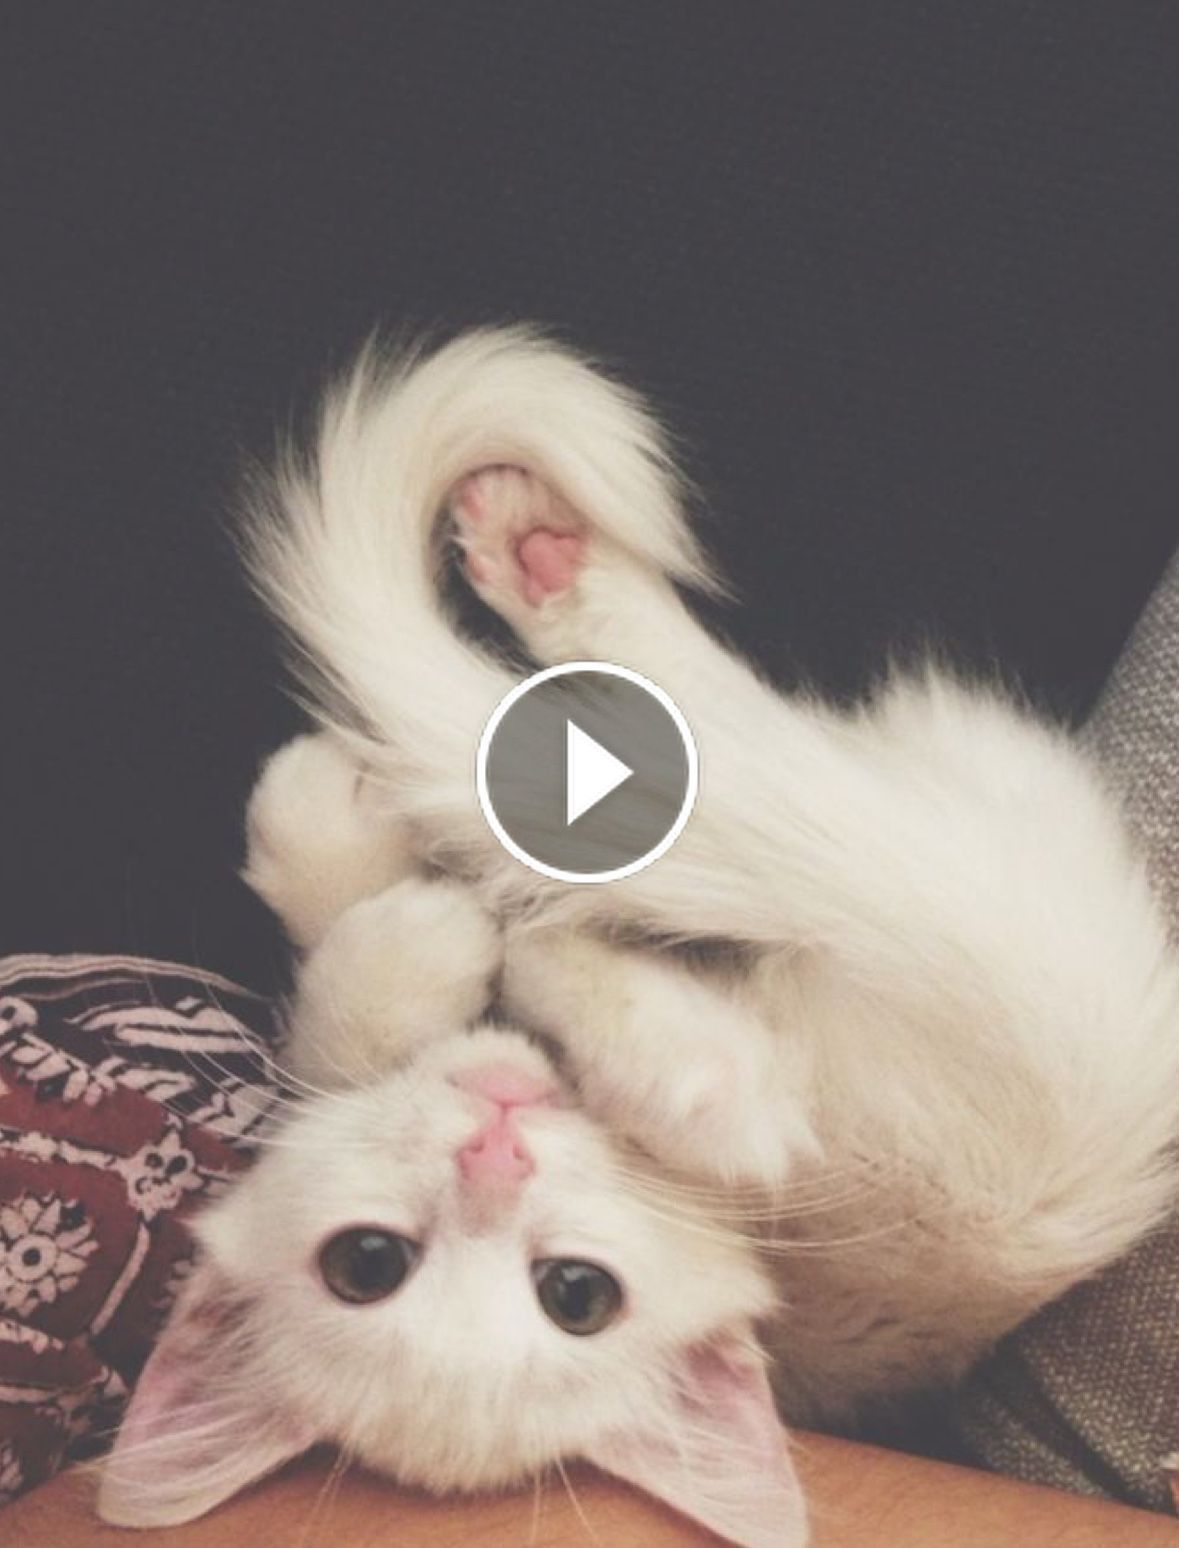 Kittens Meet Puppies For The First Time Try Not To Laugh Cats Meeting Dogs Funny Kitty Ca In 2020 Cute Kitten Gif Cats And Kittens Cute Animals With Funny Captions